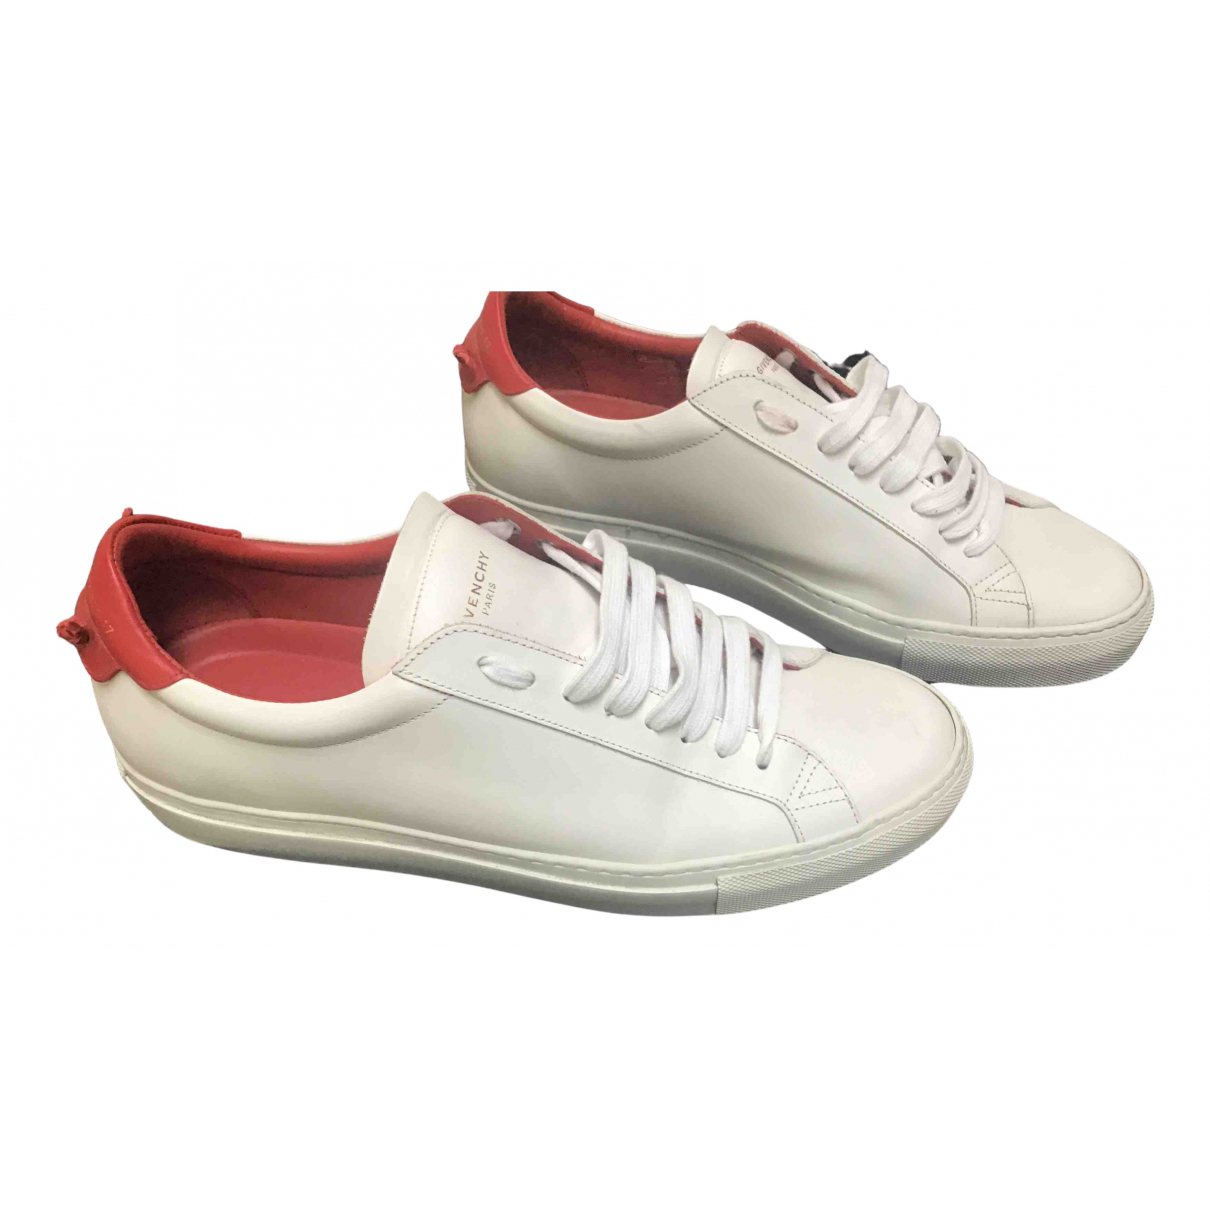 Givenchy N White Leather Trainers for Men 41.5 EU